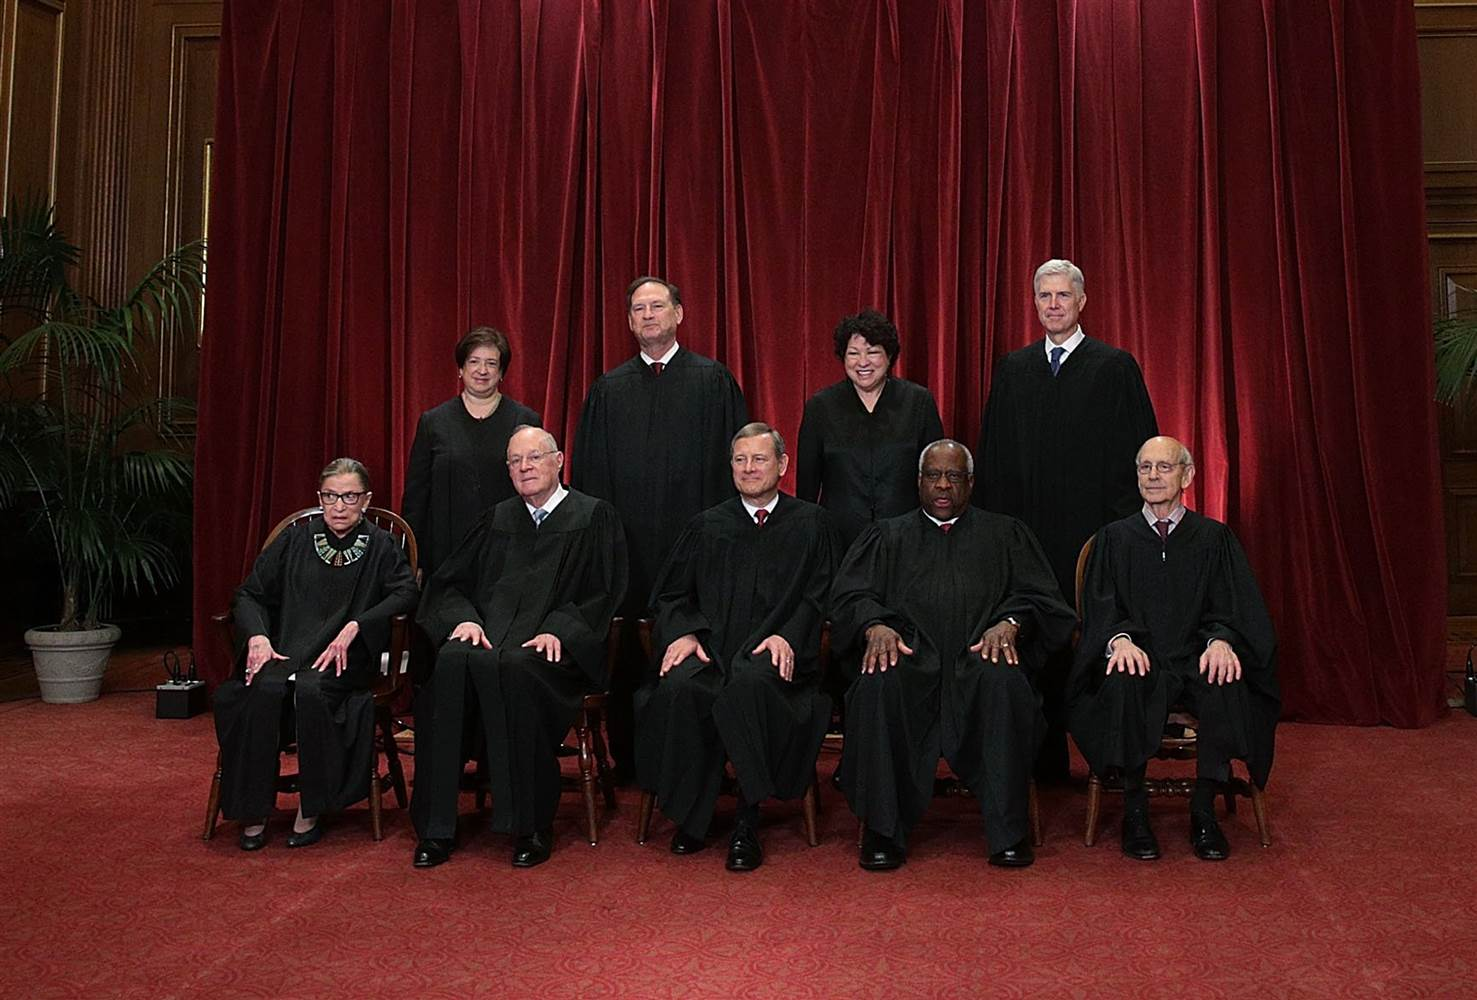 Judges of the Supreme Court of the United States of America